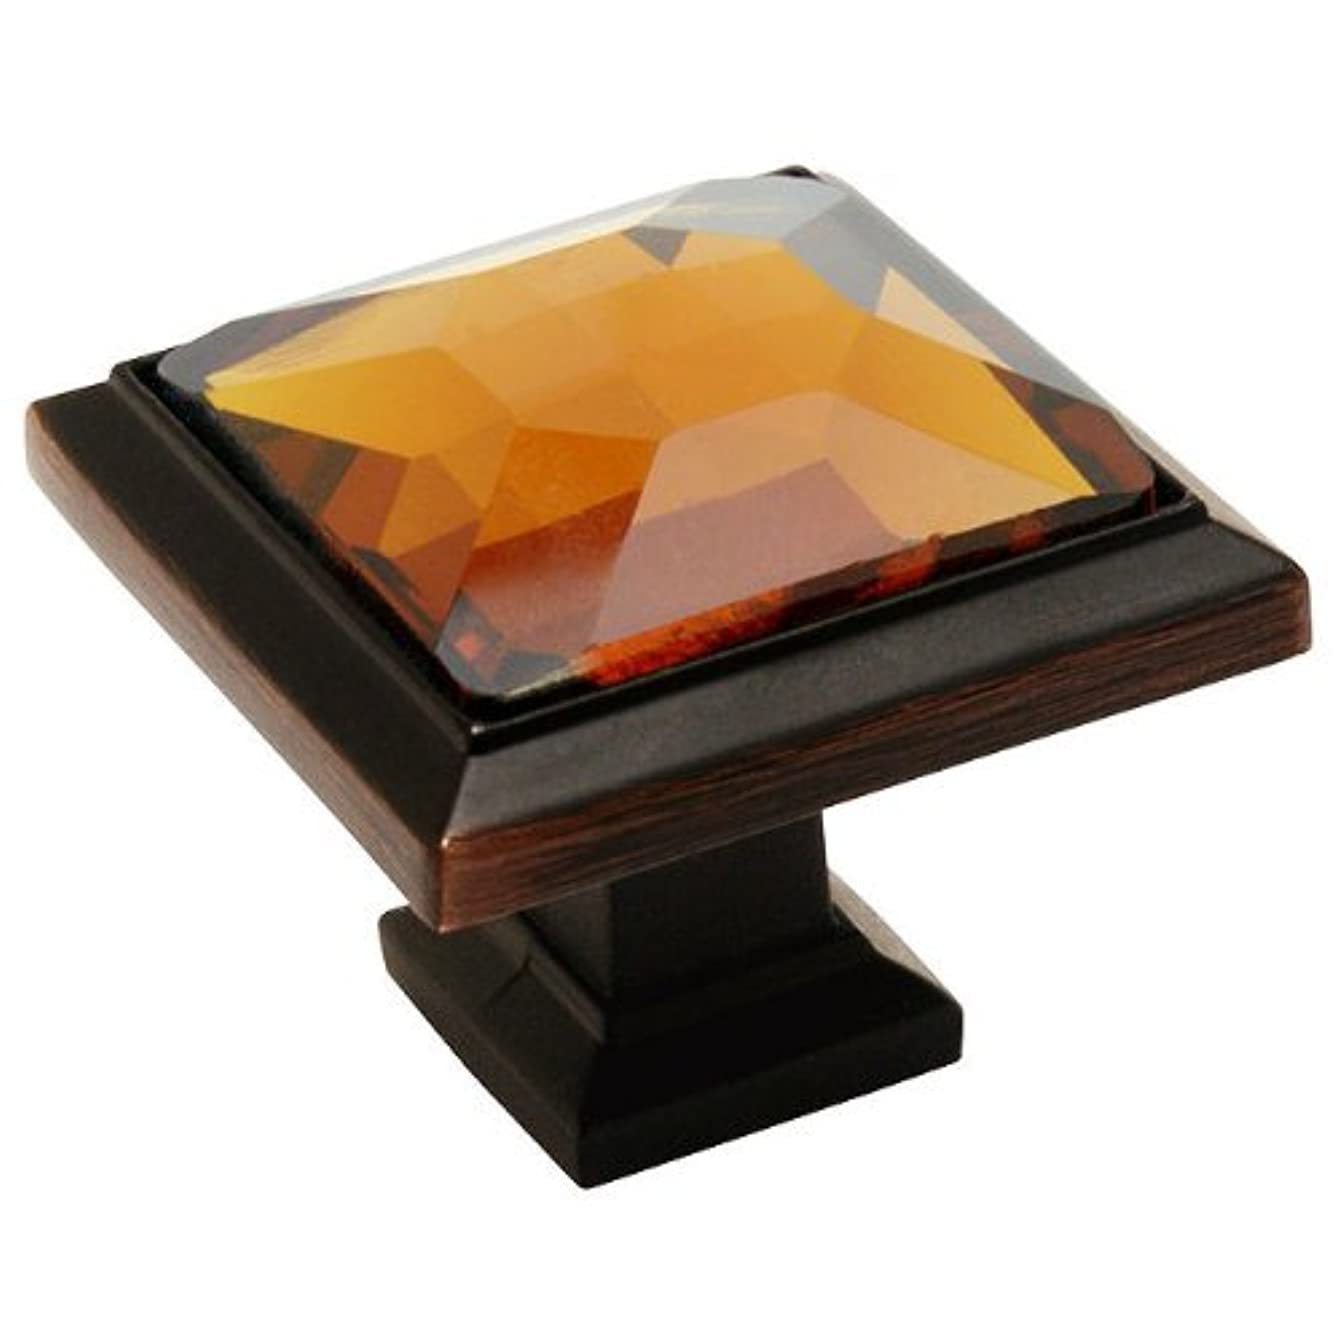 5 Pack - Cosmas 5883ORB-A Oil Rubbed Bronze Cabinet Hardware Square Knob with Amber Glass - 1-1/4